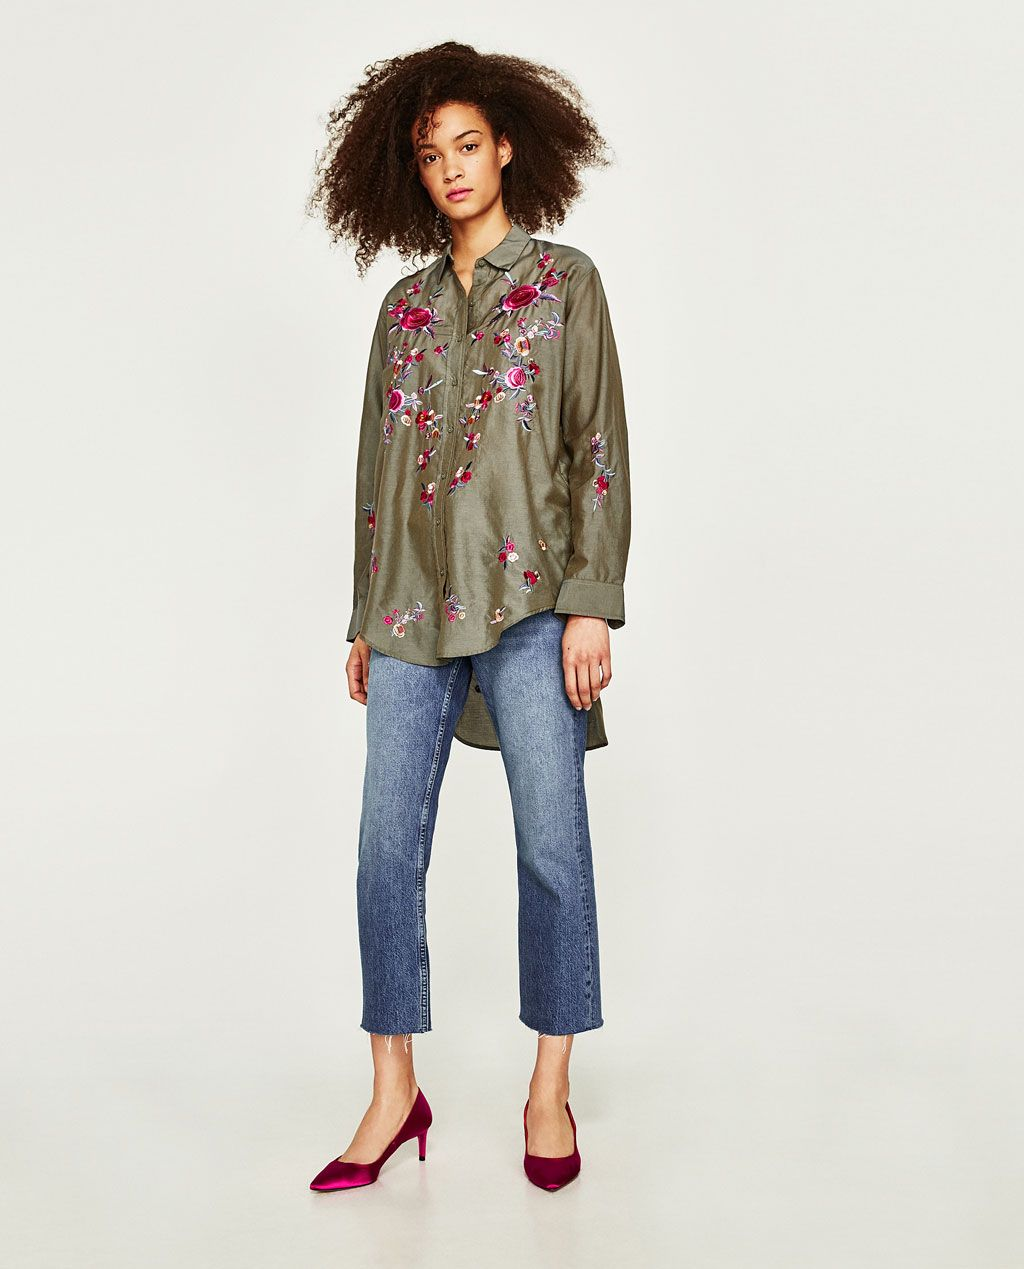 Zara flannel shirt mens  FLORAL EMBROIDERY SHIRT from Zara  My Style  Clothes  Pinterest